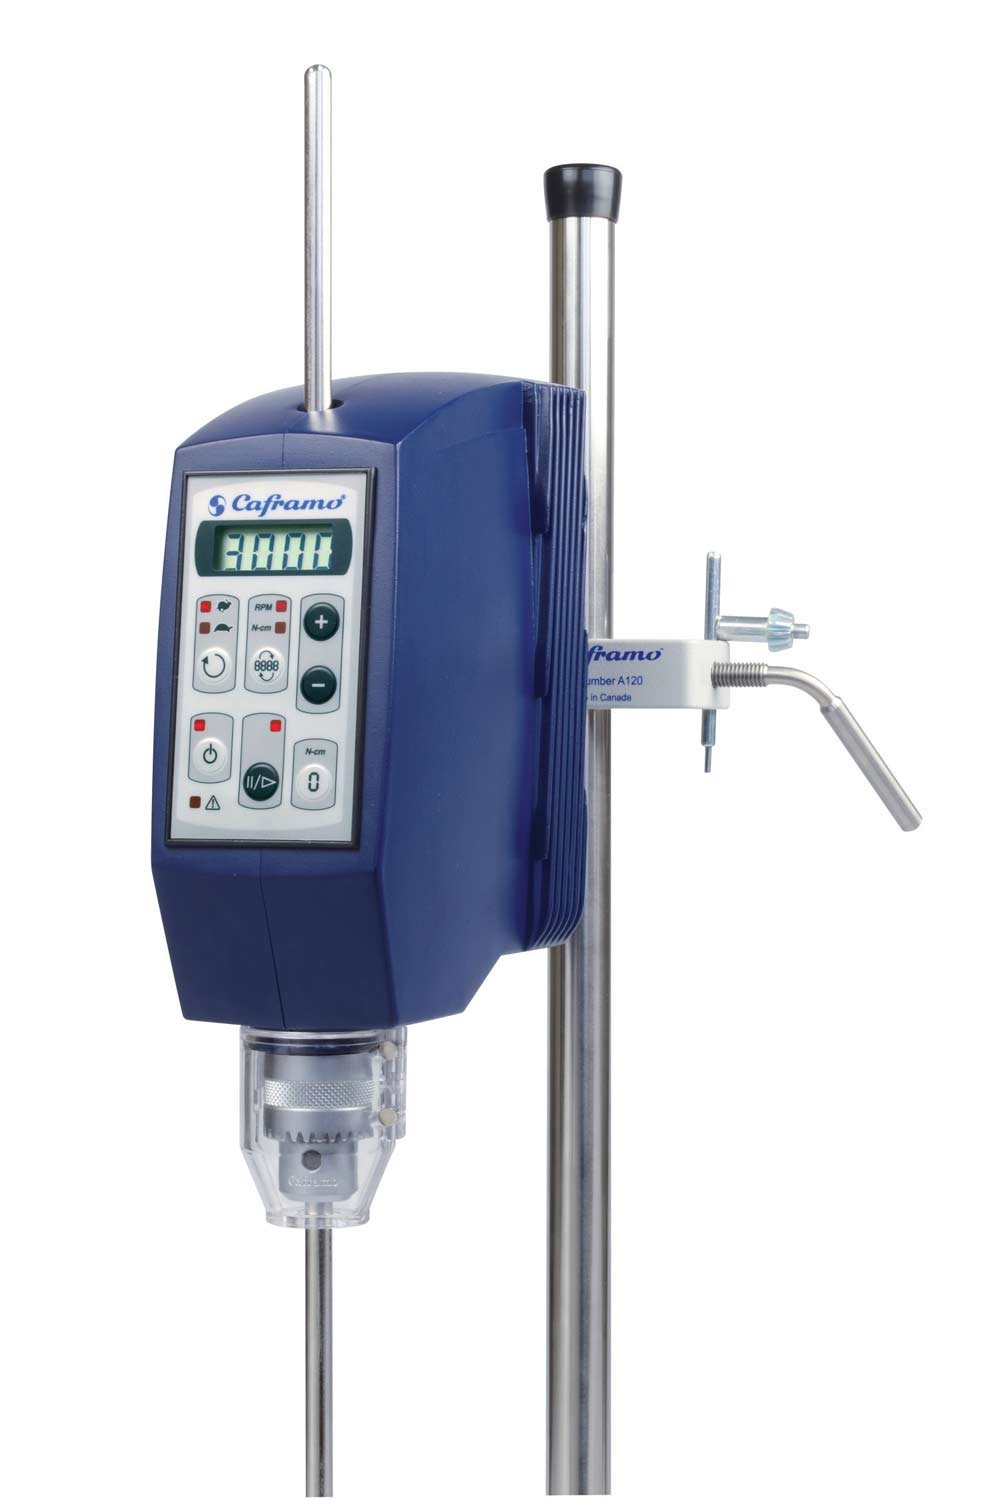 CAFRAMO LIMITED BDC3030 Model BDC3030 General Purpose Overhead Stirrer, Speed Range 20-3000 rpm, Digital, Mixes Creams, Lotions, Personal Care Products